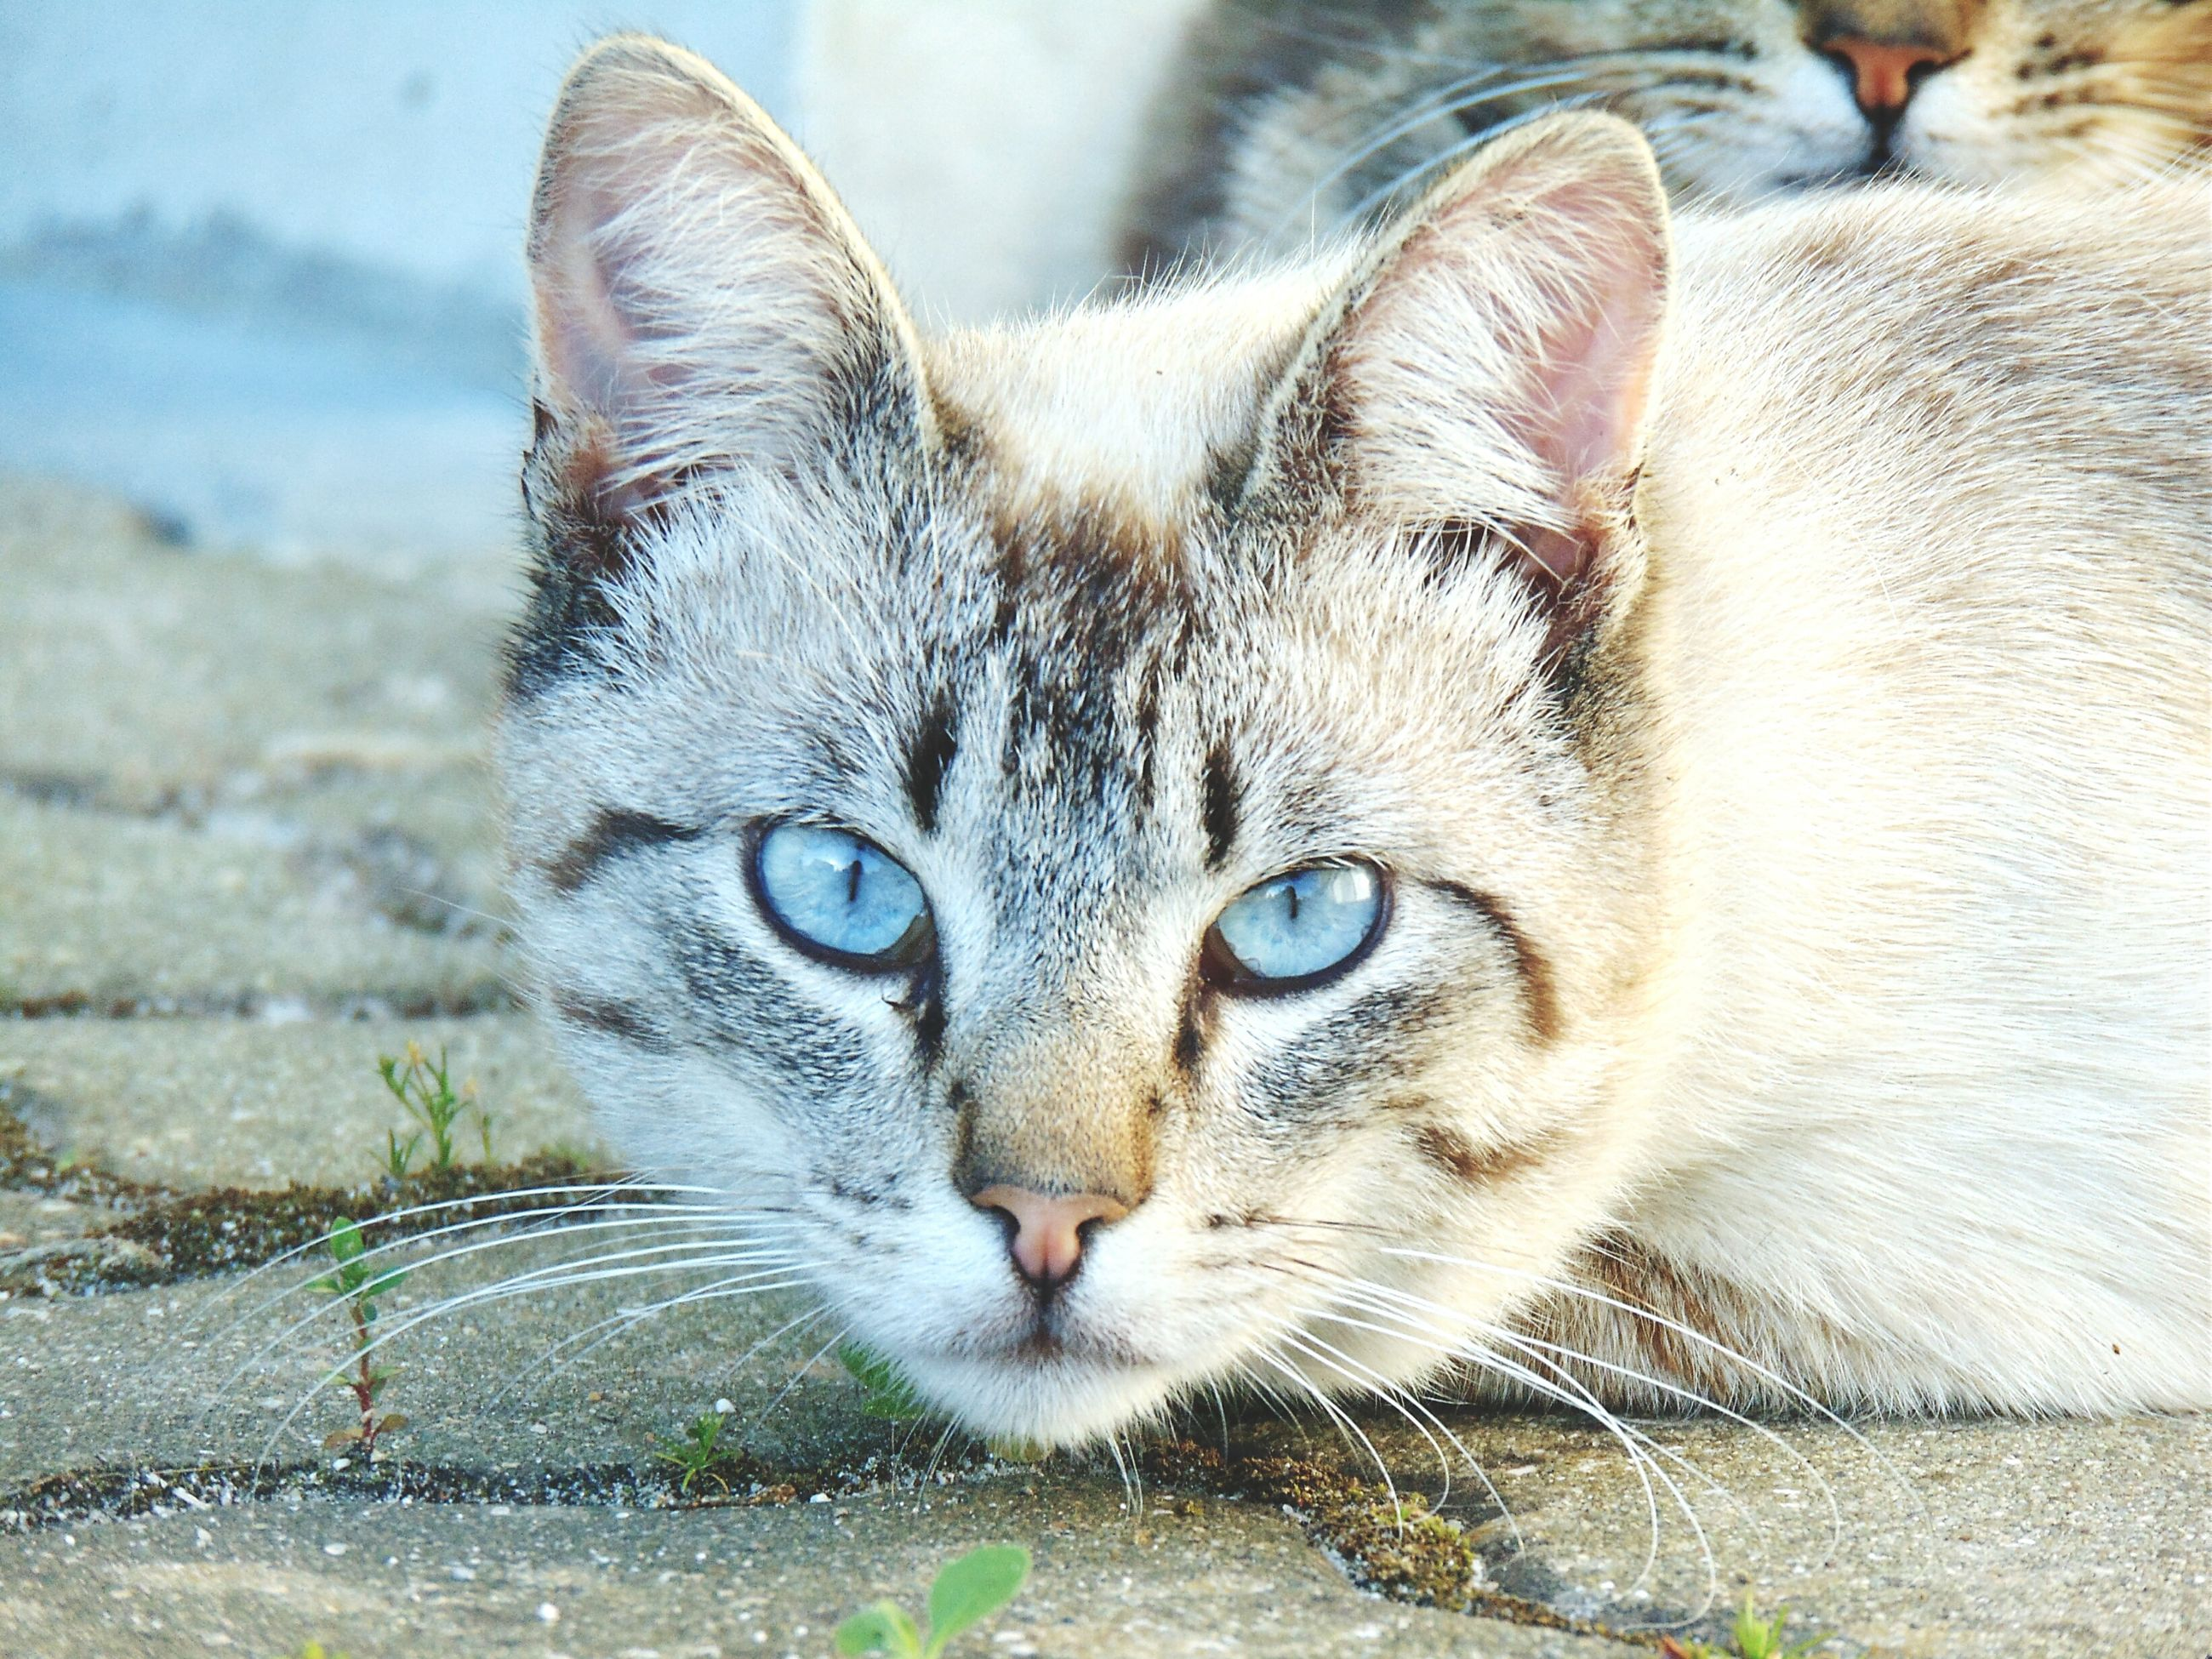 domestic cat, cat, animal themes, feline, one animal, whisker, domestic animals, mammal, pets, portrait, looking at camera, close-up, animal eye, animal head, alertness, focus on foreground, front view, staring, outdoors